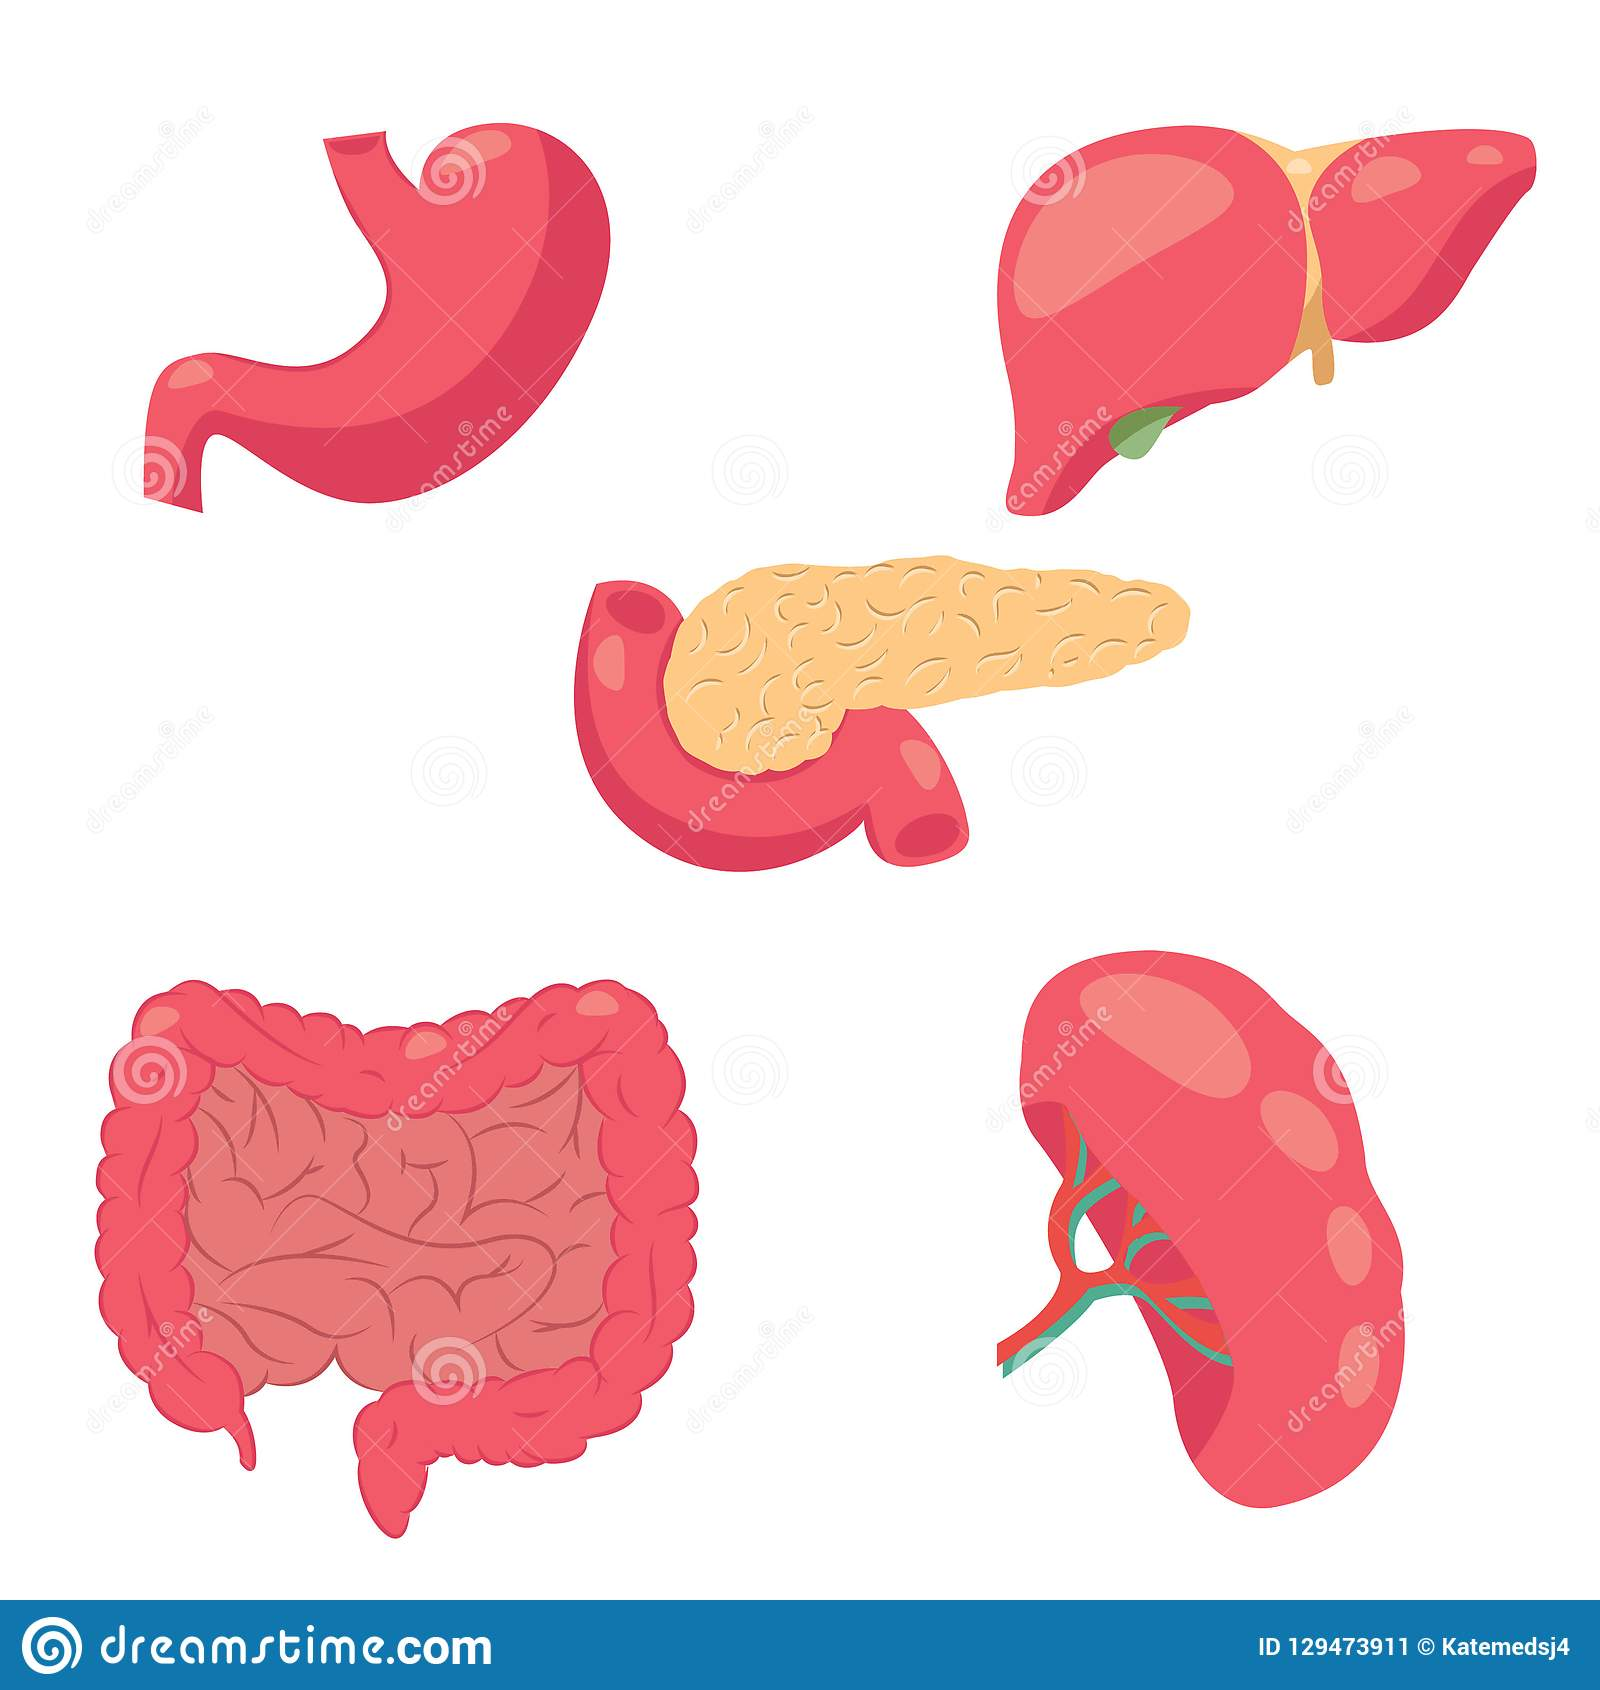 Drawing Of Human Digestive System Stock Vector